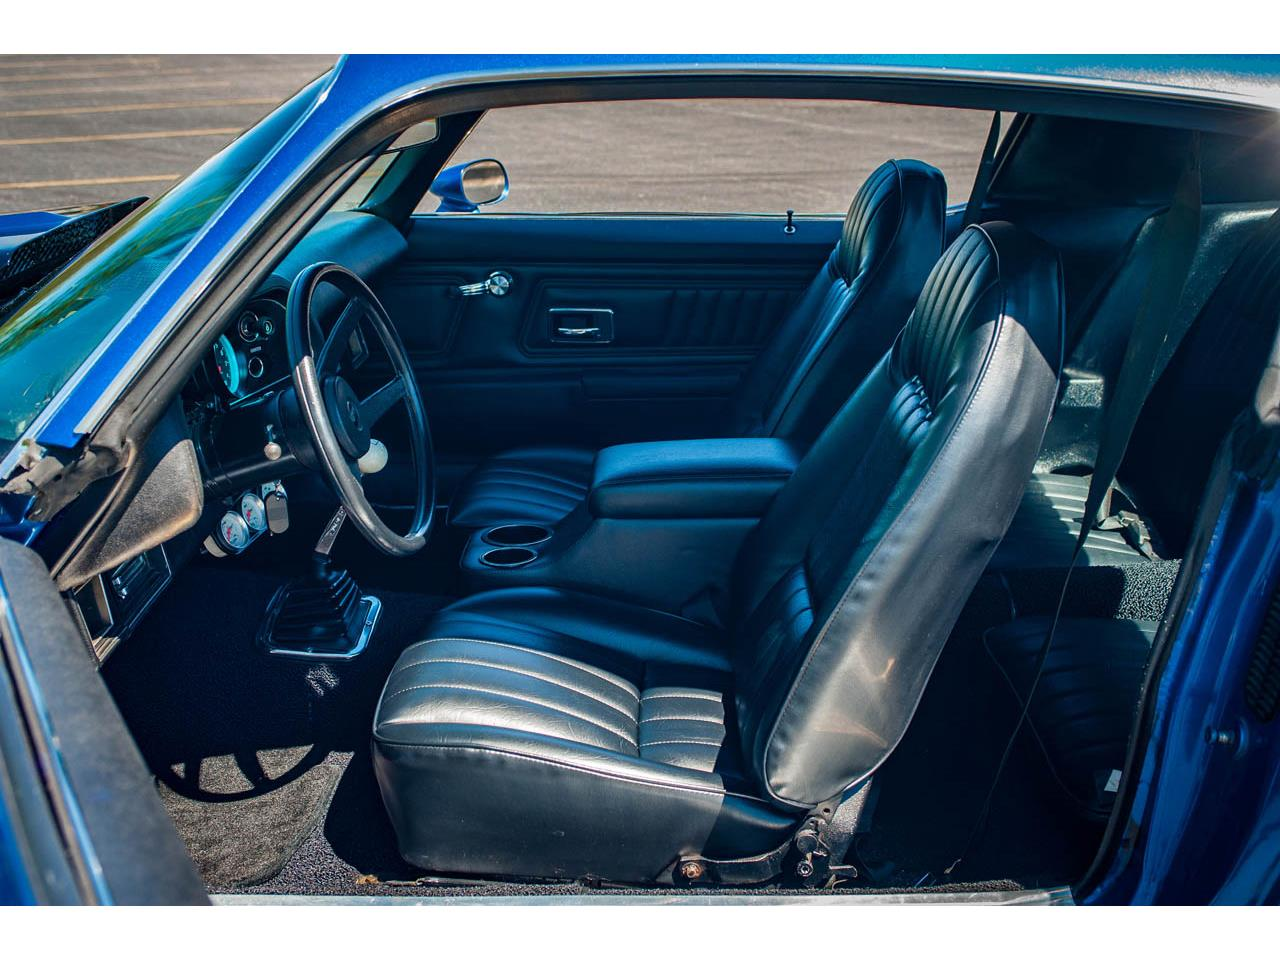 Large Picture of '71 Camaro located in Illinois - $35,995.00 Offered by Gateway Classic Cars - St. Louis - QB8S